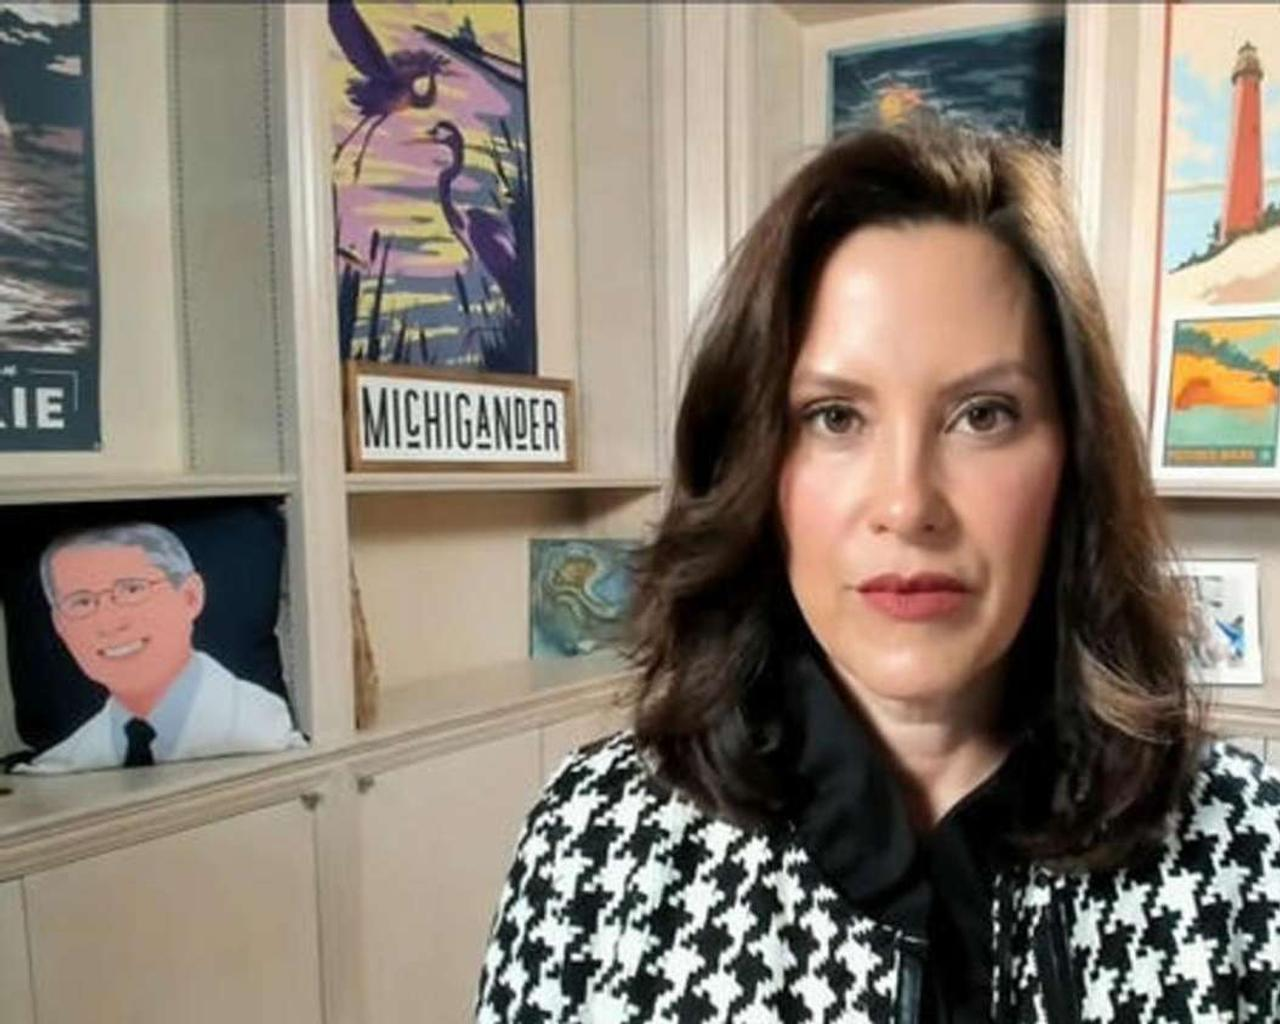 Whitmer is pushing for more vaccines as COVID cases rise in Michigan